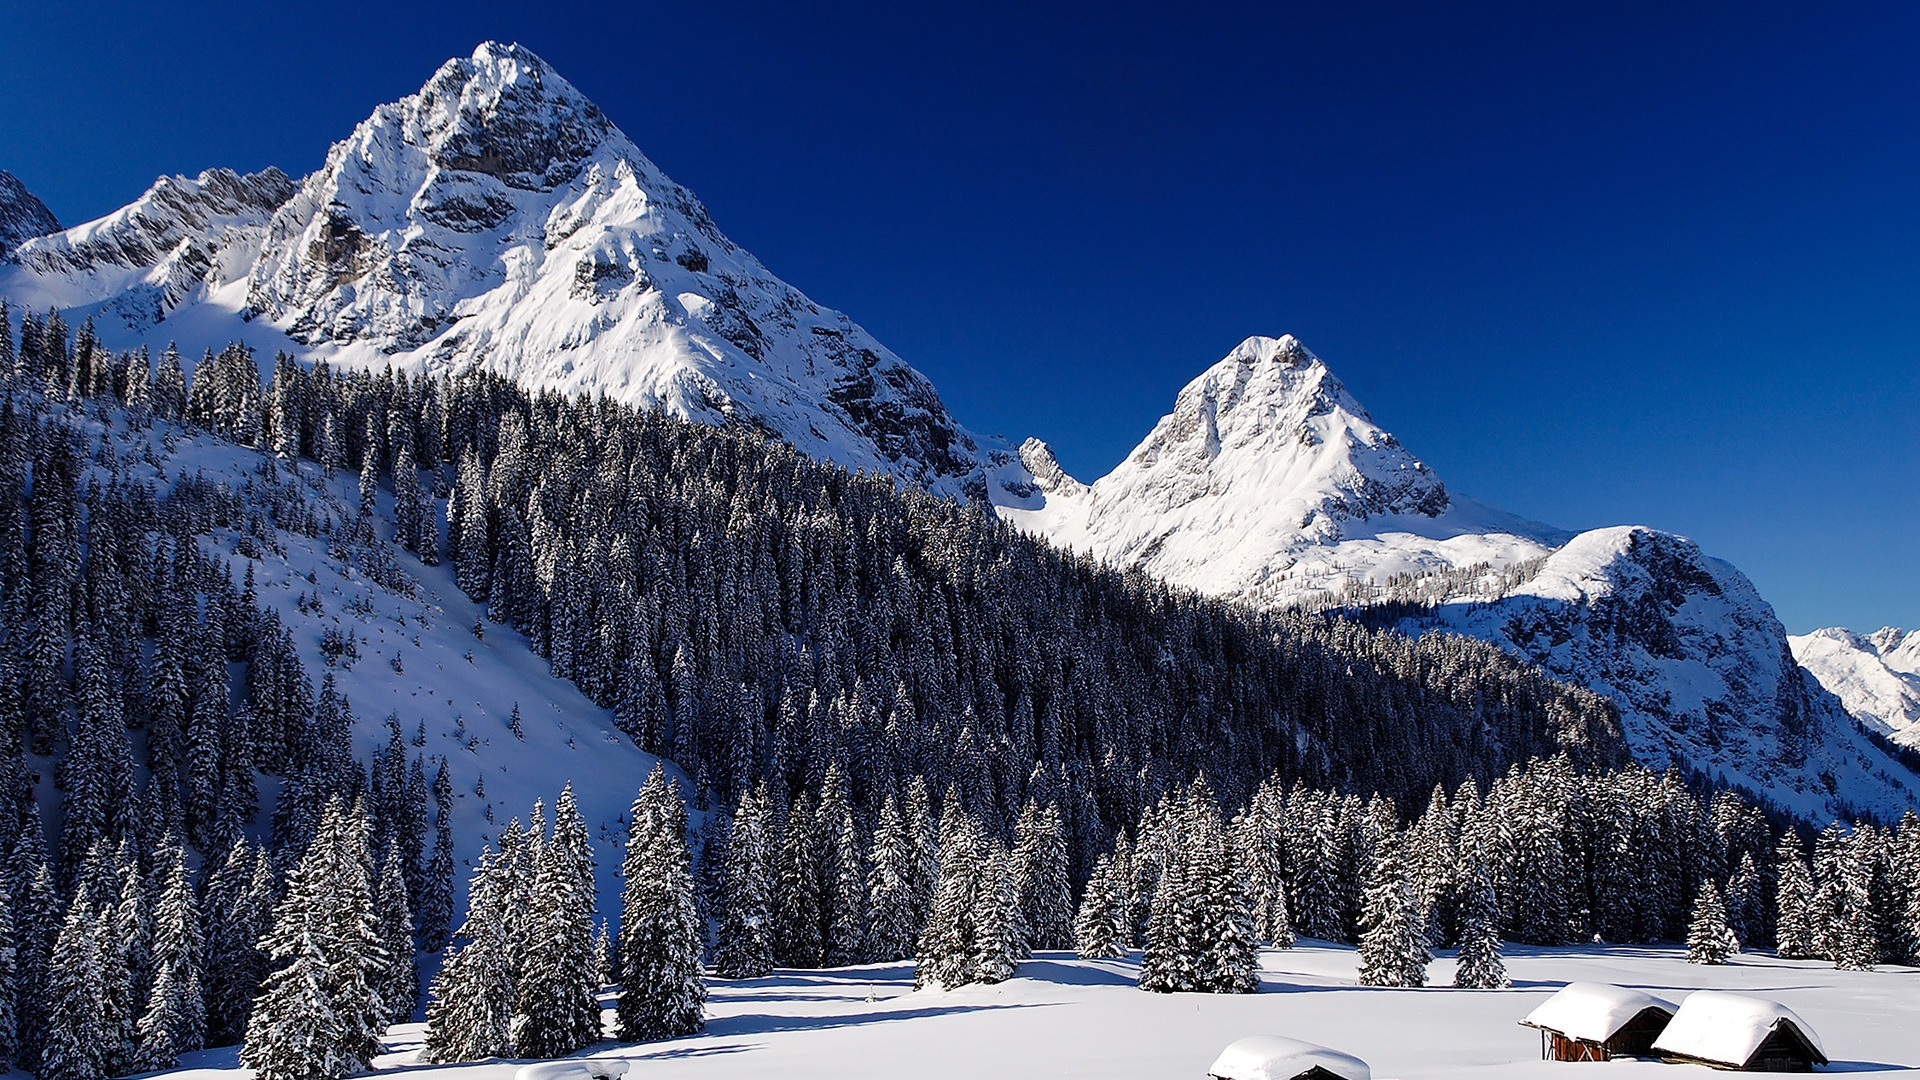 Winter Mountains Wallpapers Hd